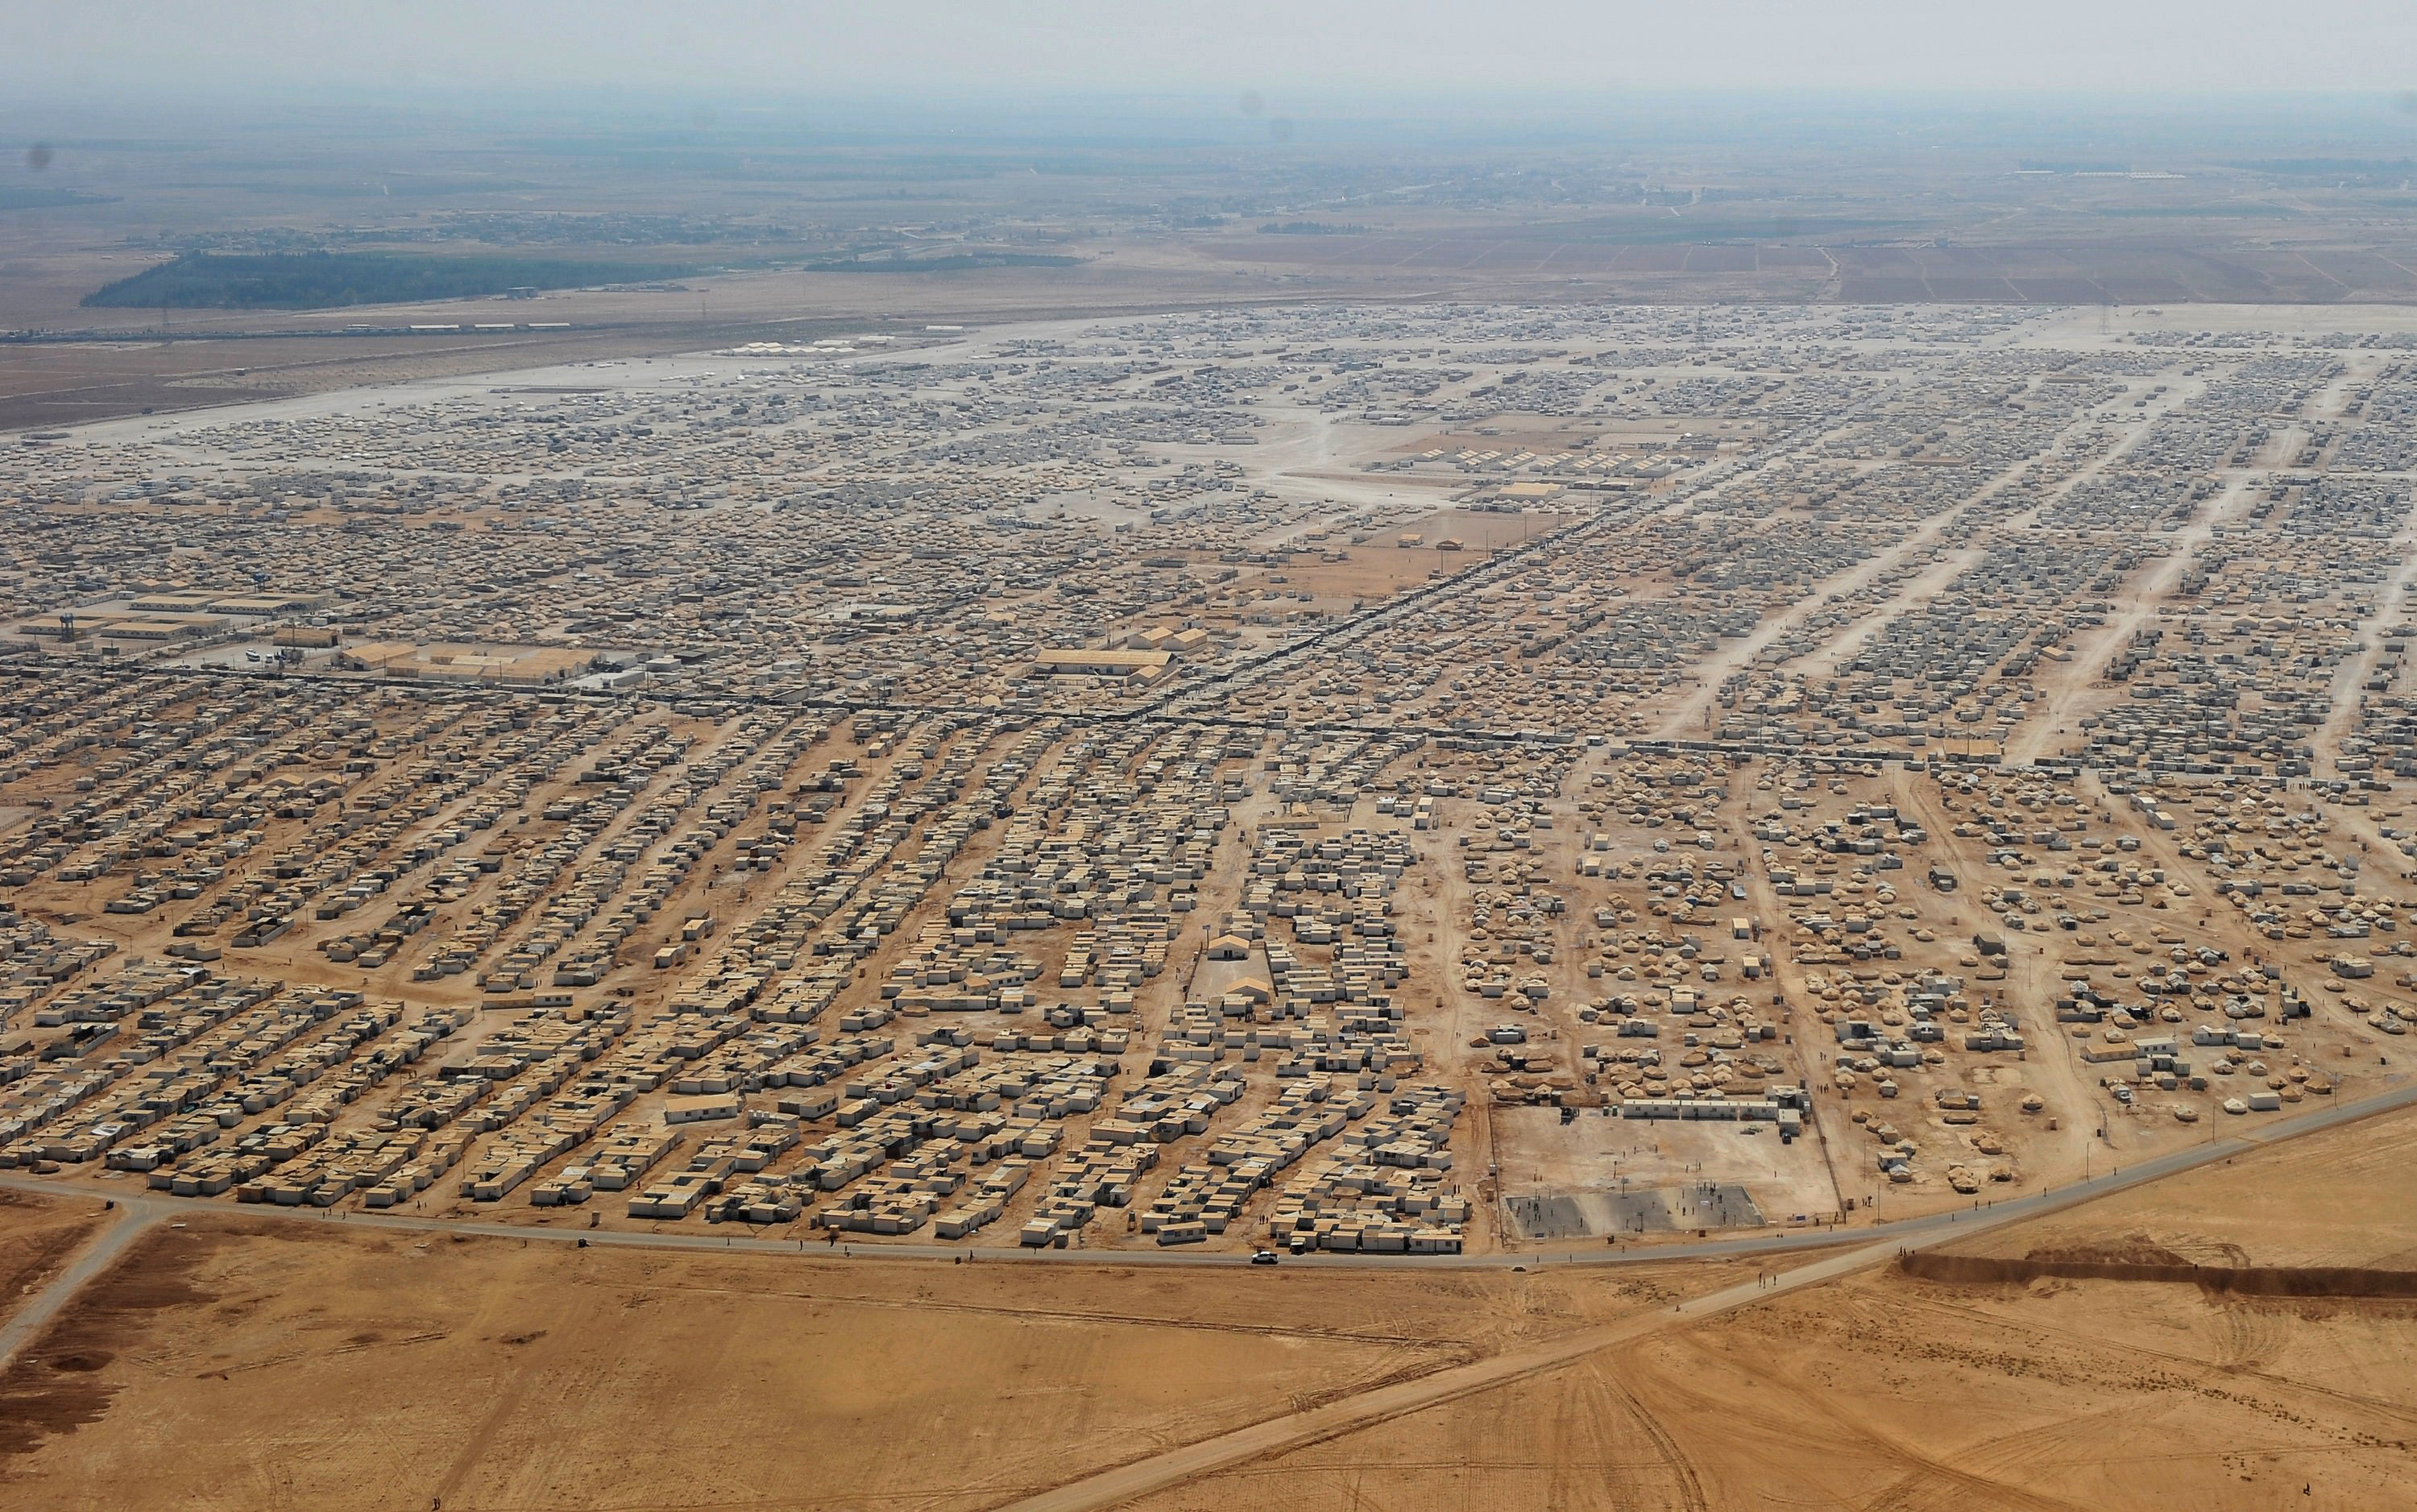 Za'atari refugee camp in Jordan is home to 80,000 displaced Syrians.